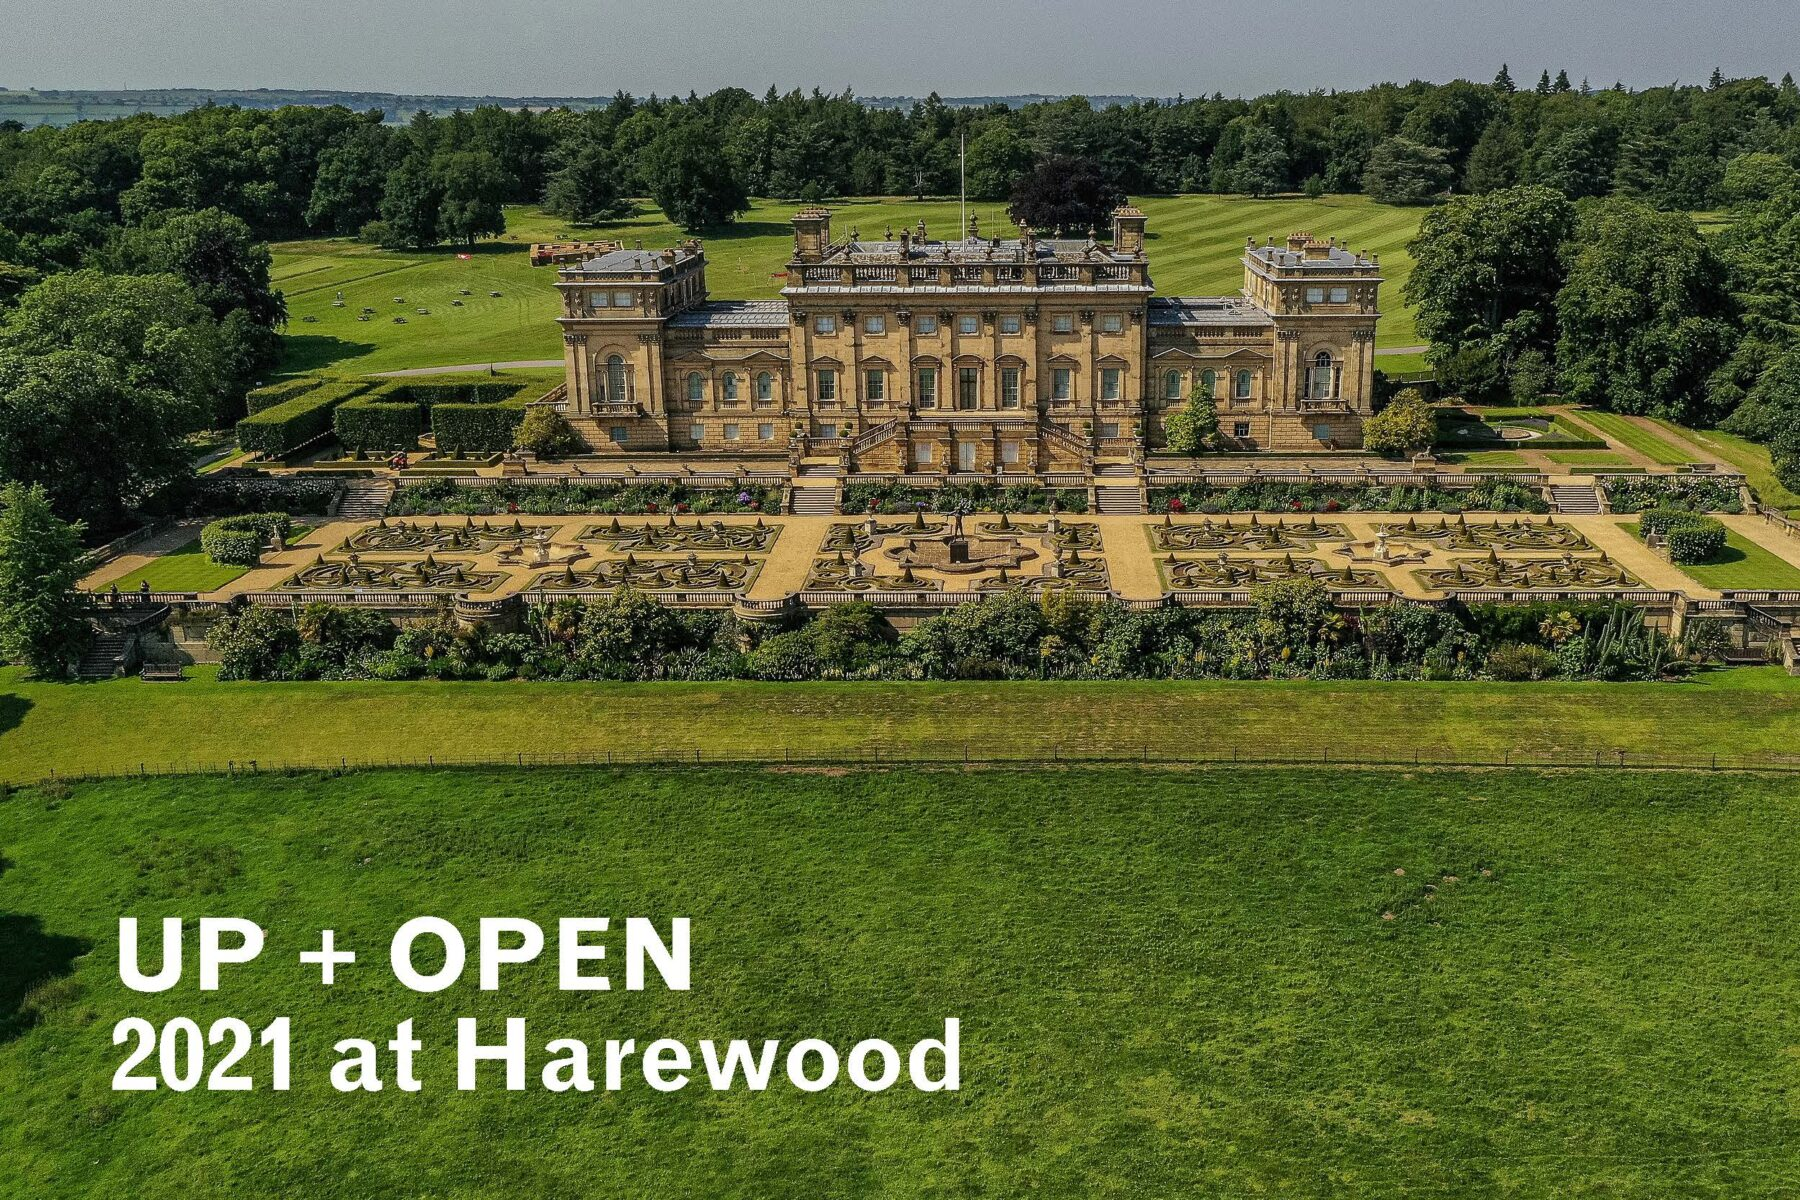 UP+OPEN – 2021 at Harewood